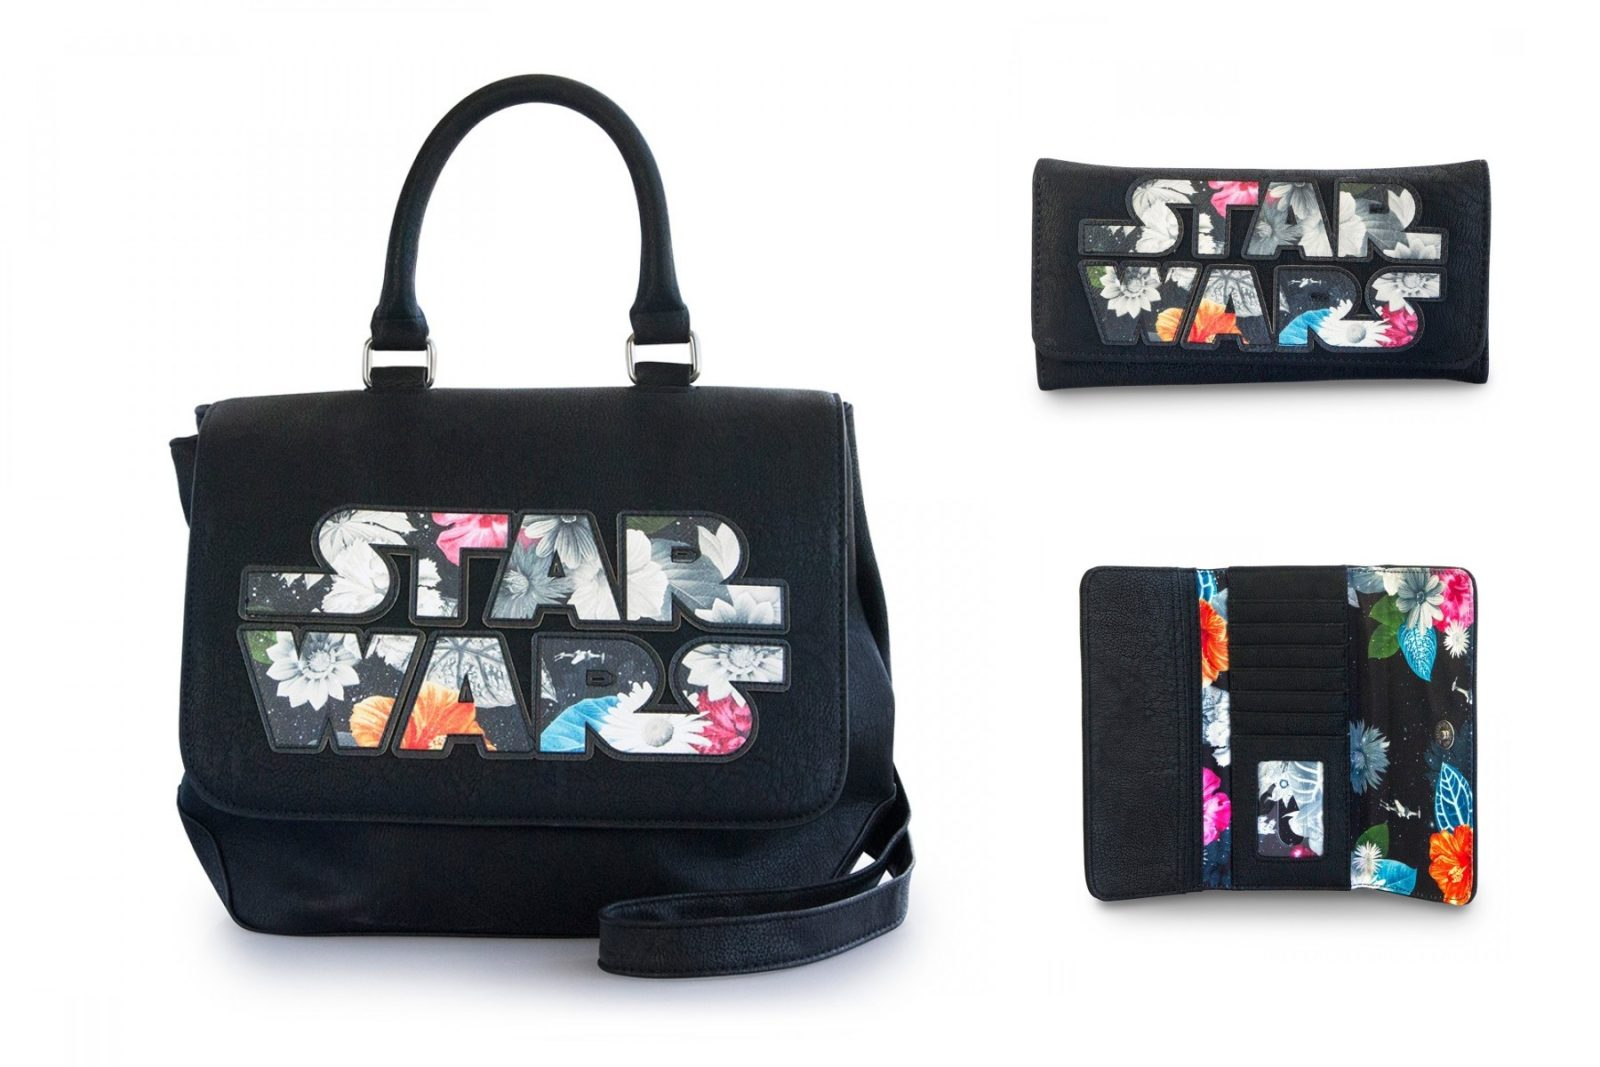 New Loungefly x Star Wars arrivals